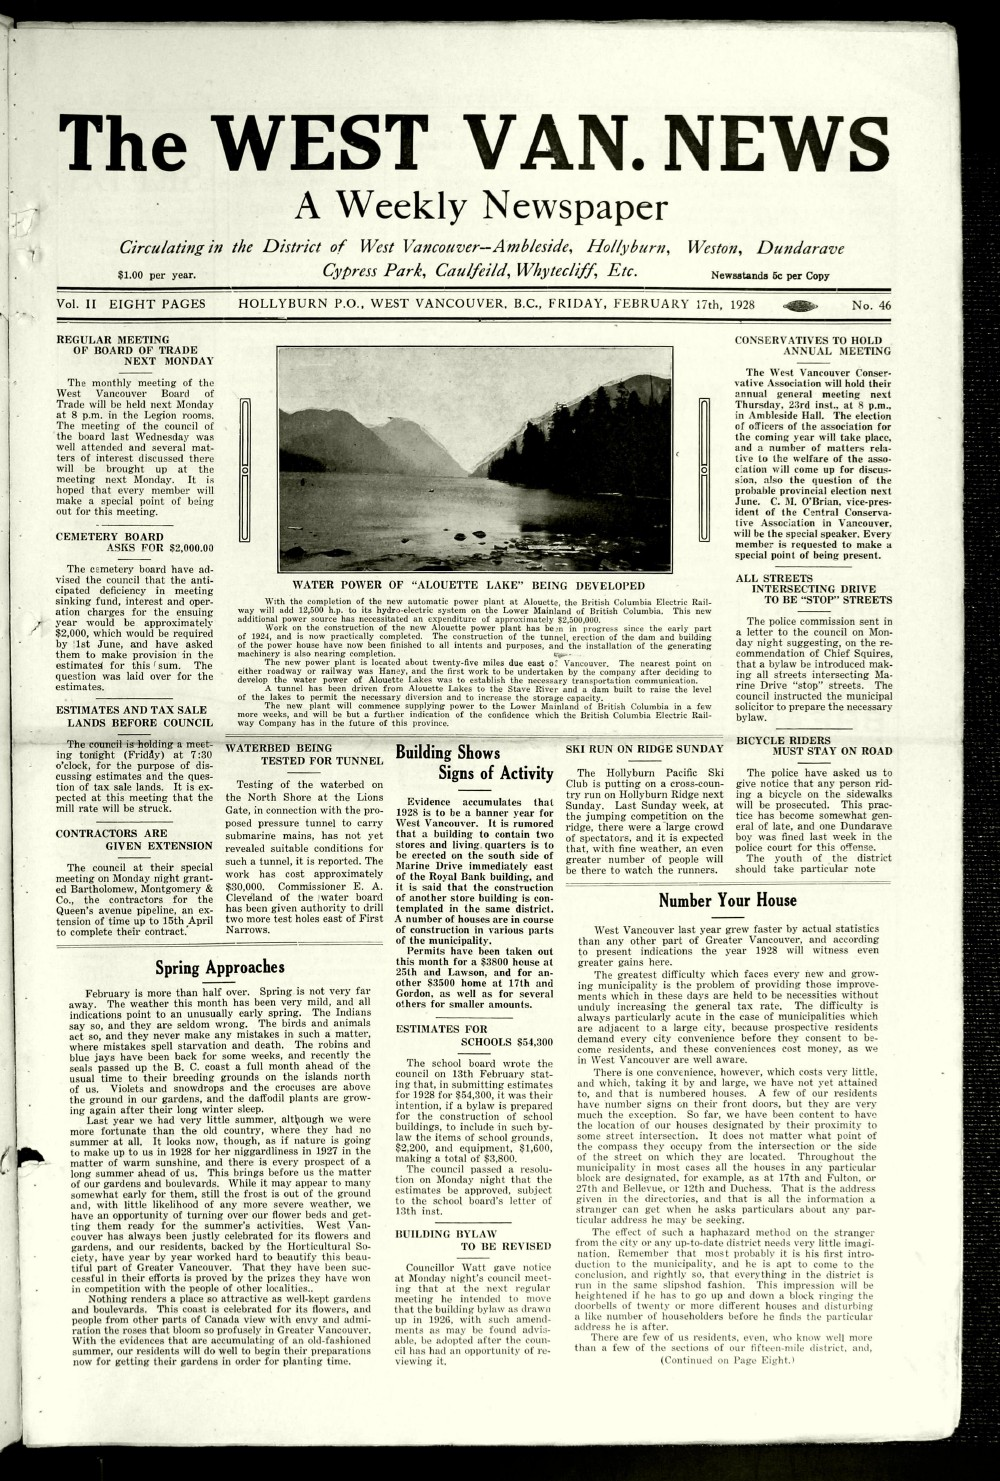 West Van. News (West Vancouver), 17 Feb 1928